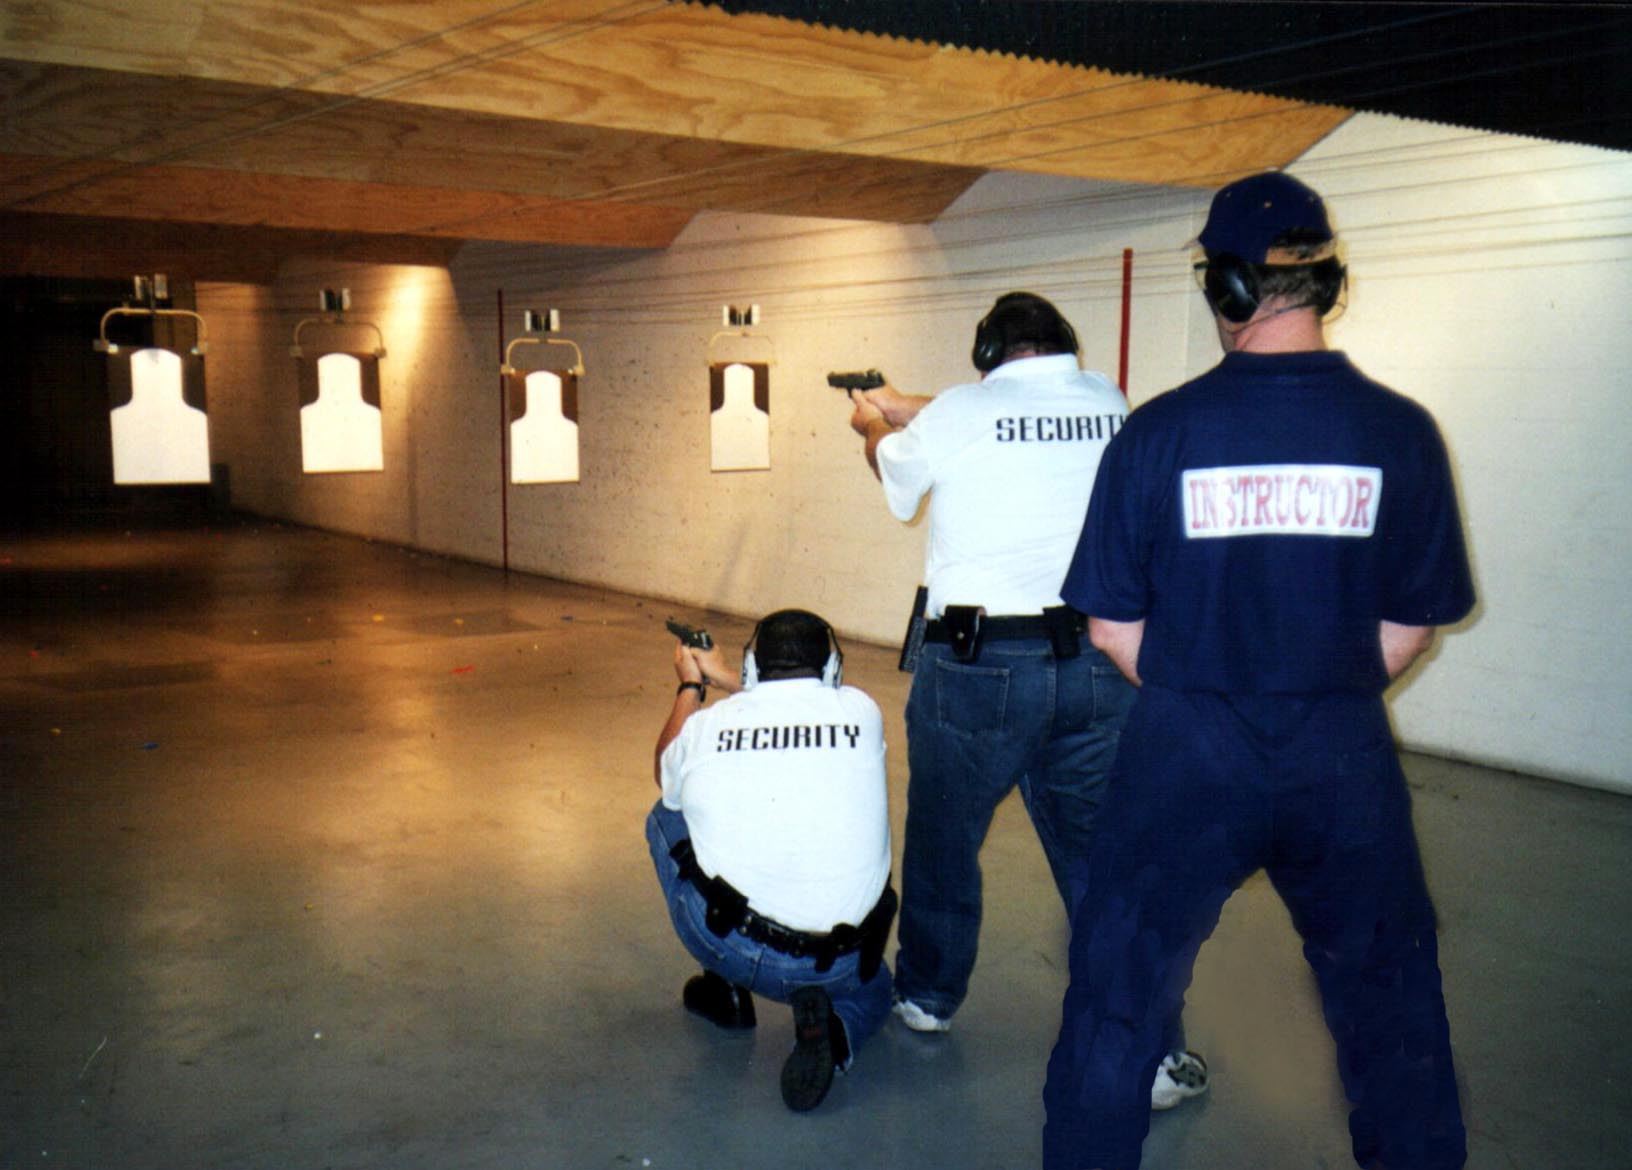 Security Training – What Are The Different Training Courses To Choose From?